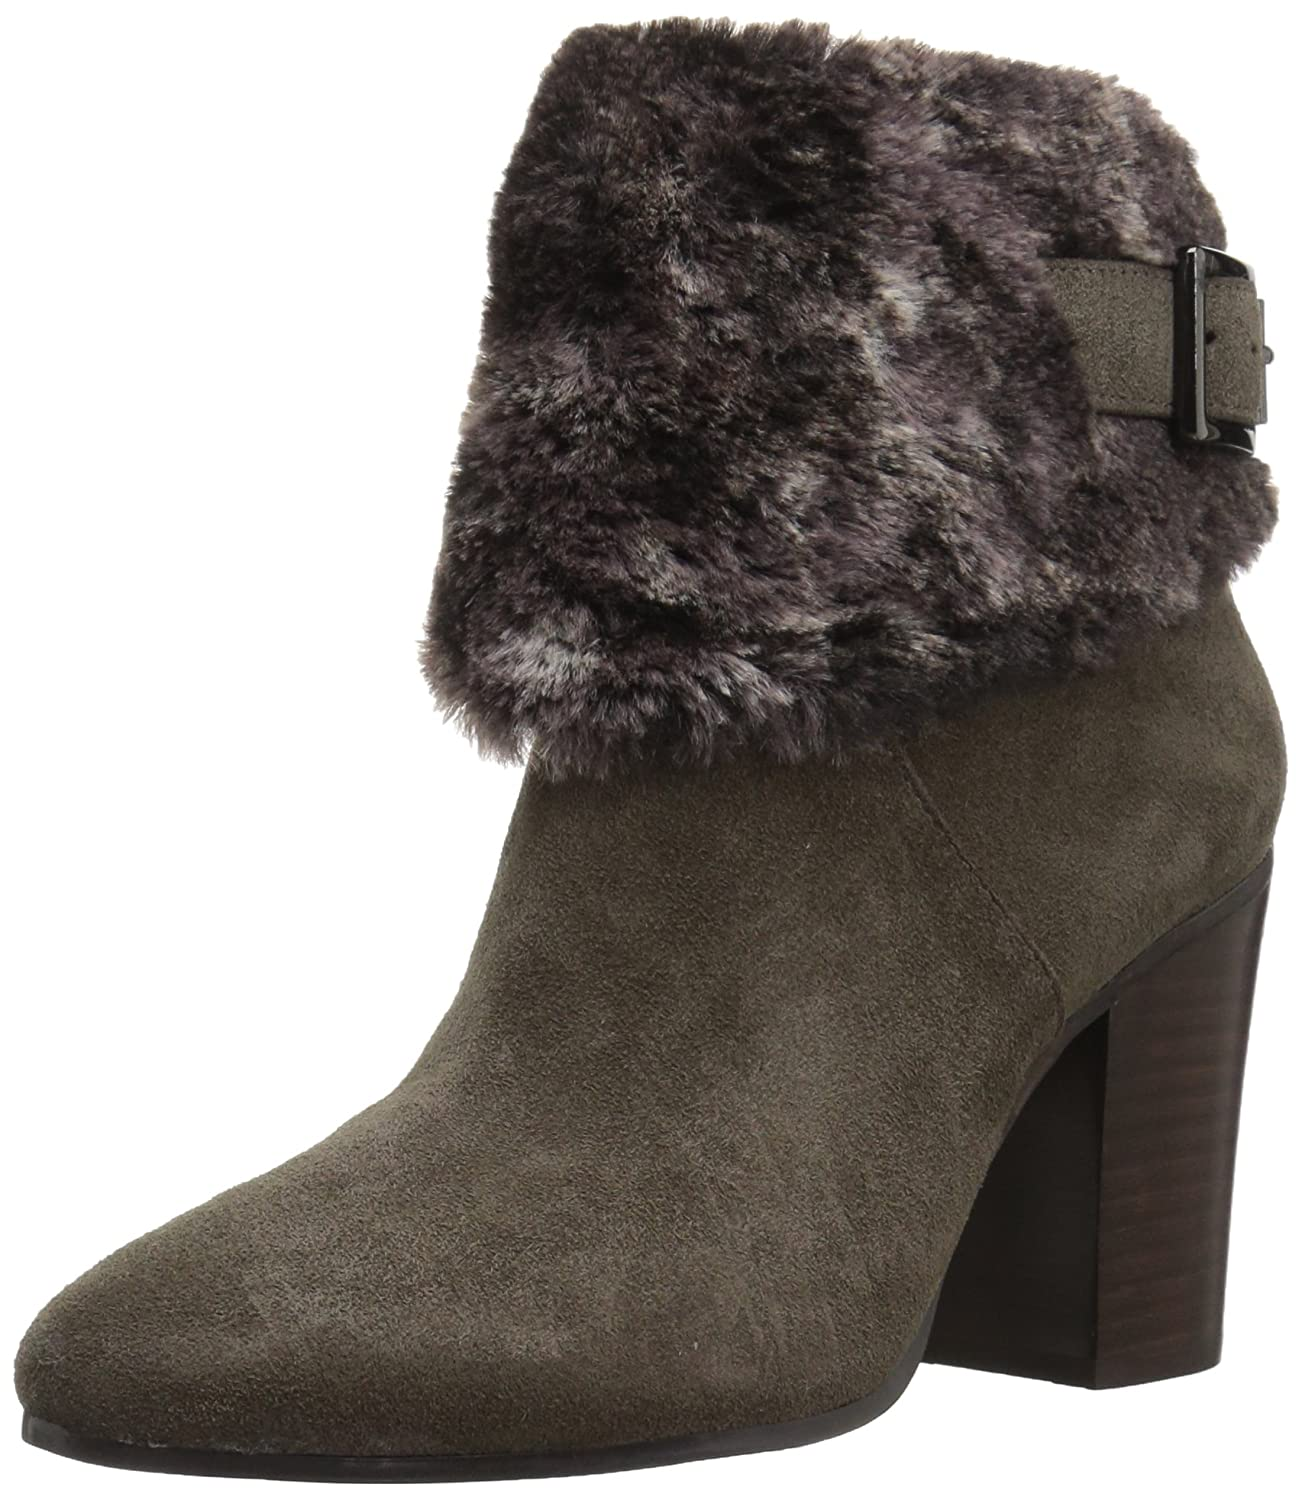 Aerosoles Women's North Square Ankle Boot B074GYY47N 8.5 B(M) US|Taupe Suede